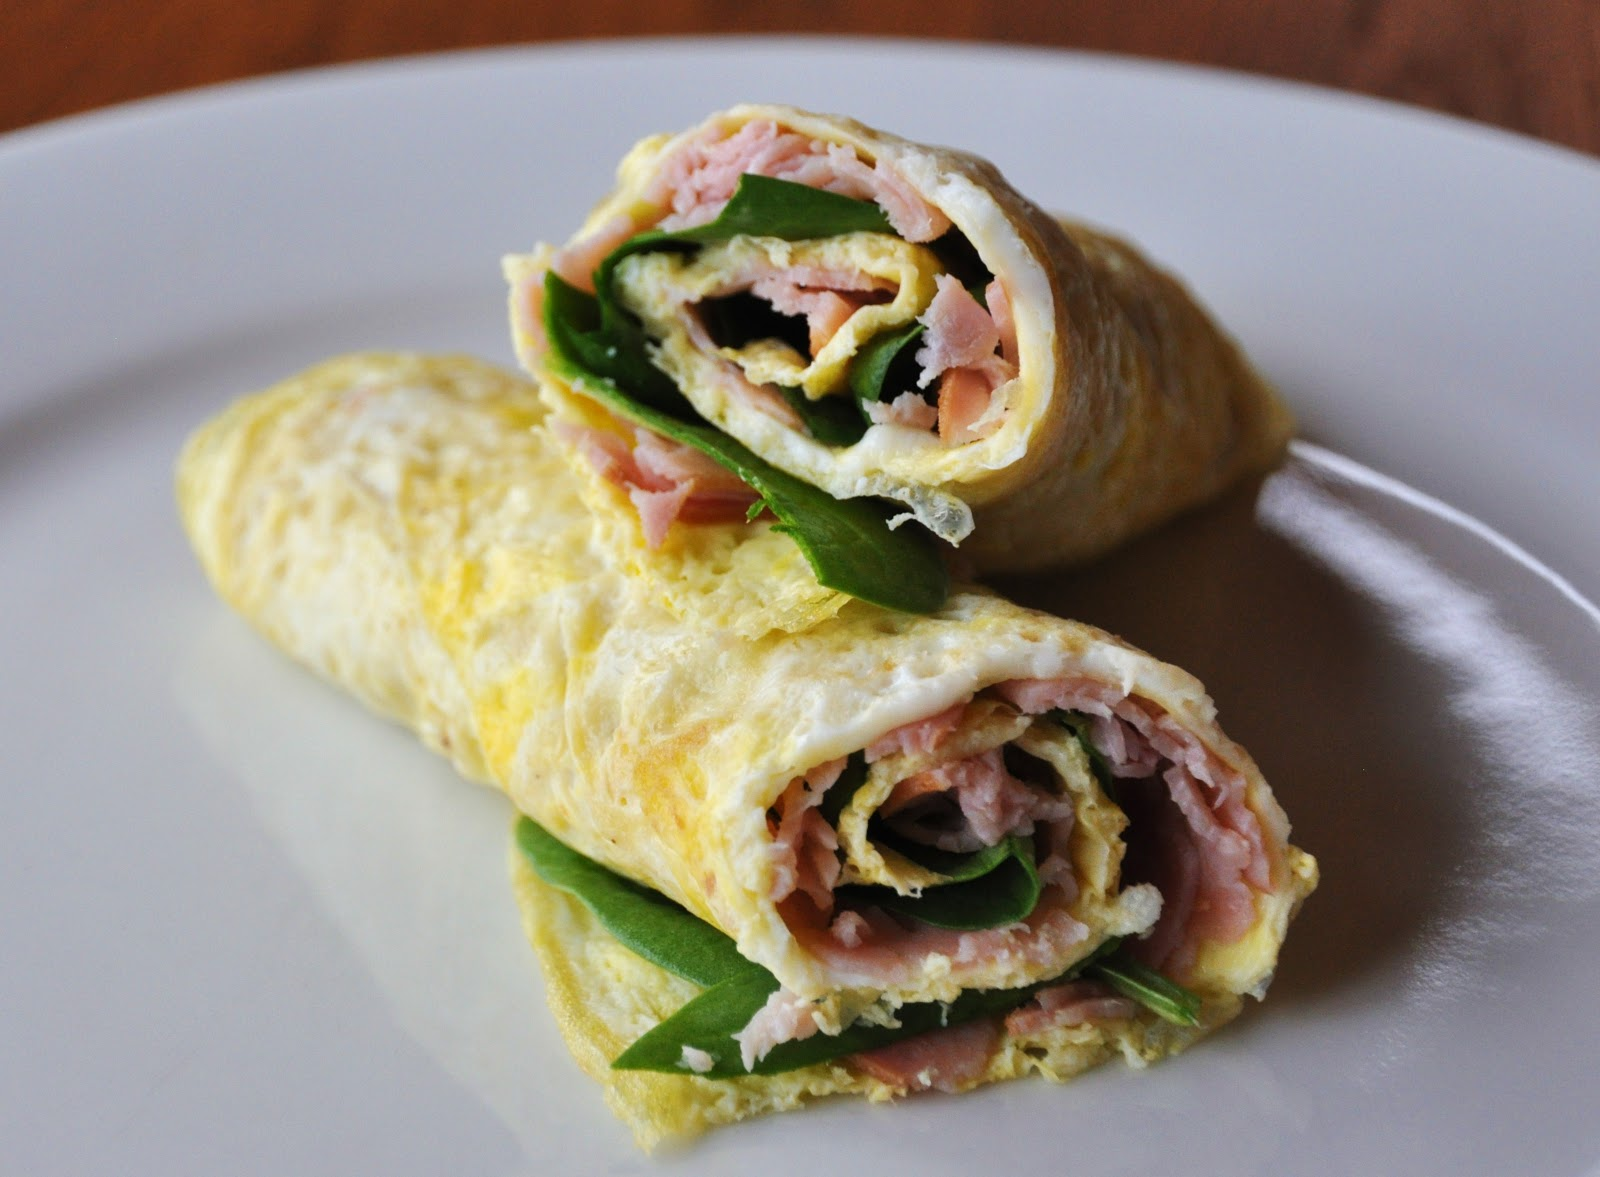 LA GRAHAM: SKINNY HAM AND SPINACH OMELET- CLEAN EATING